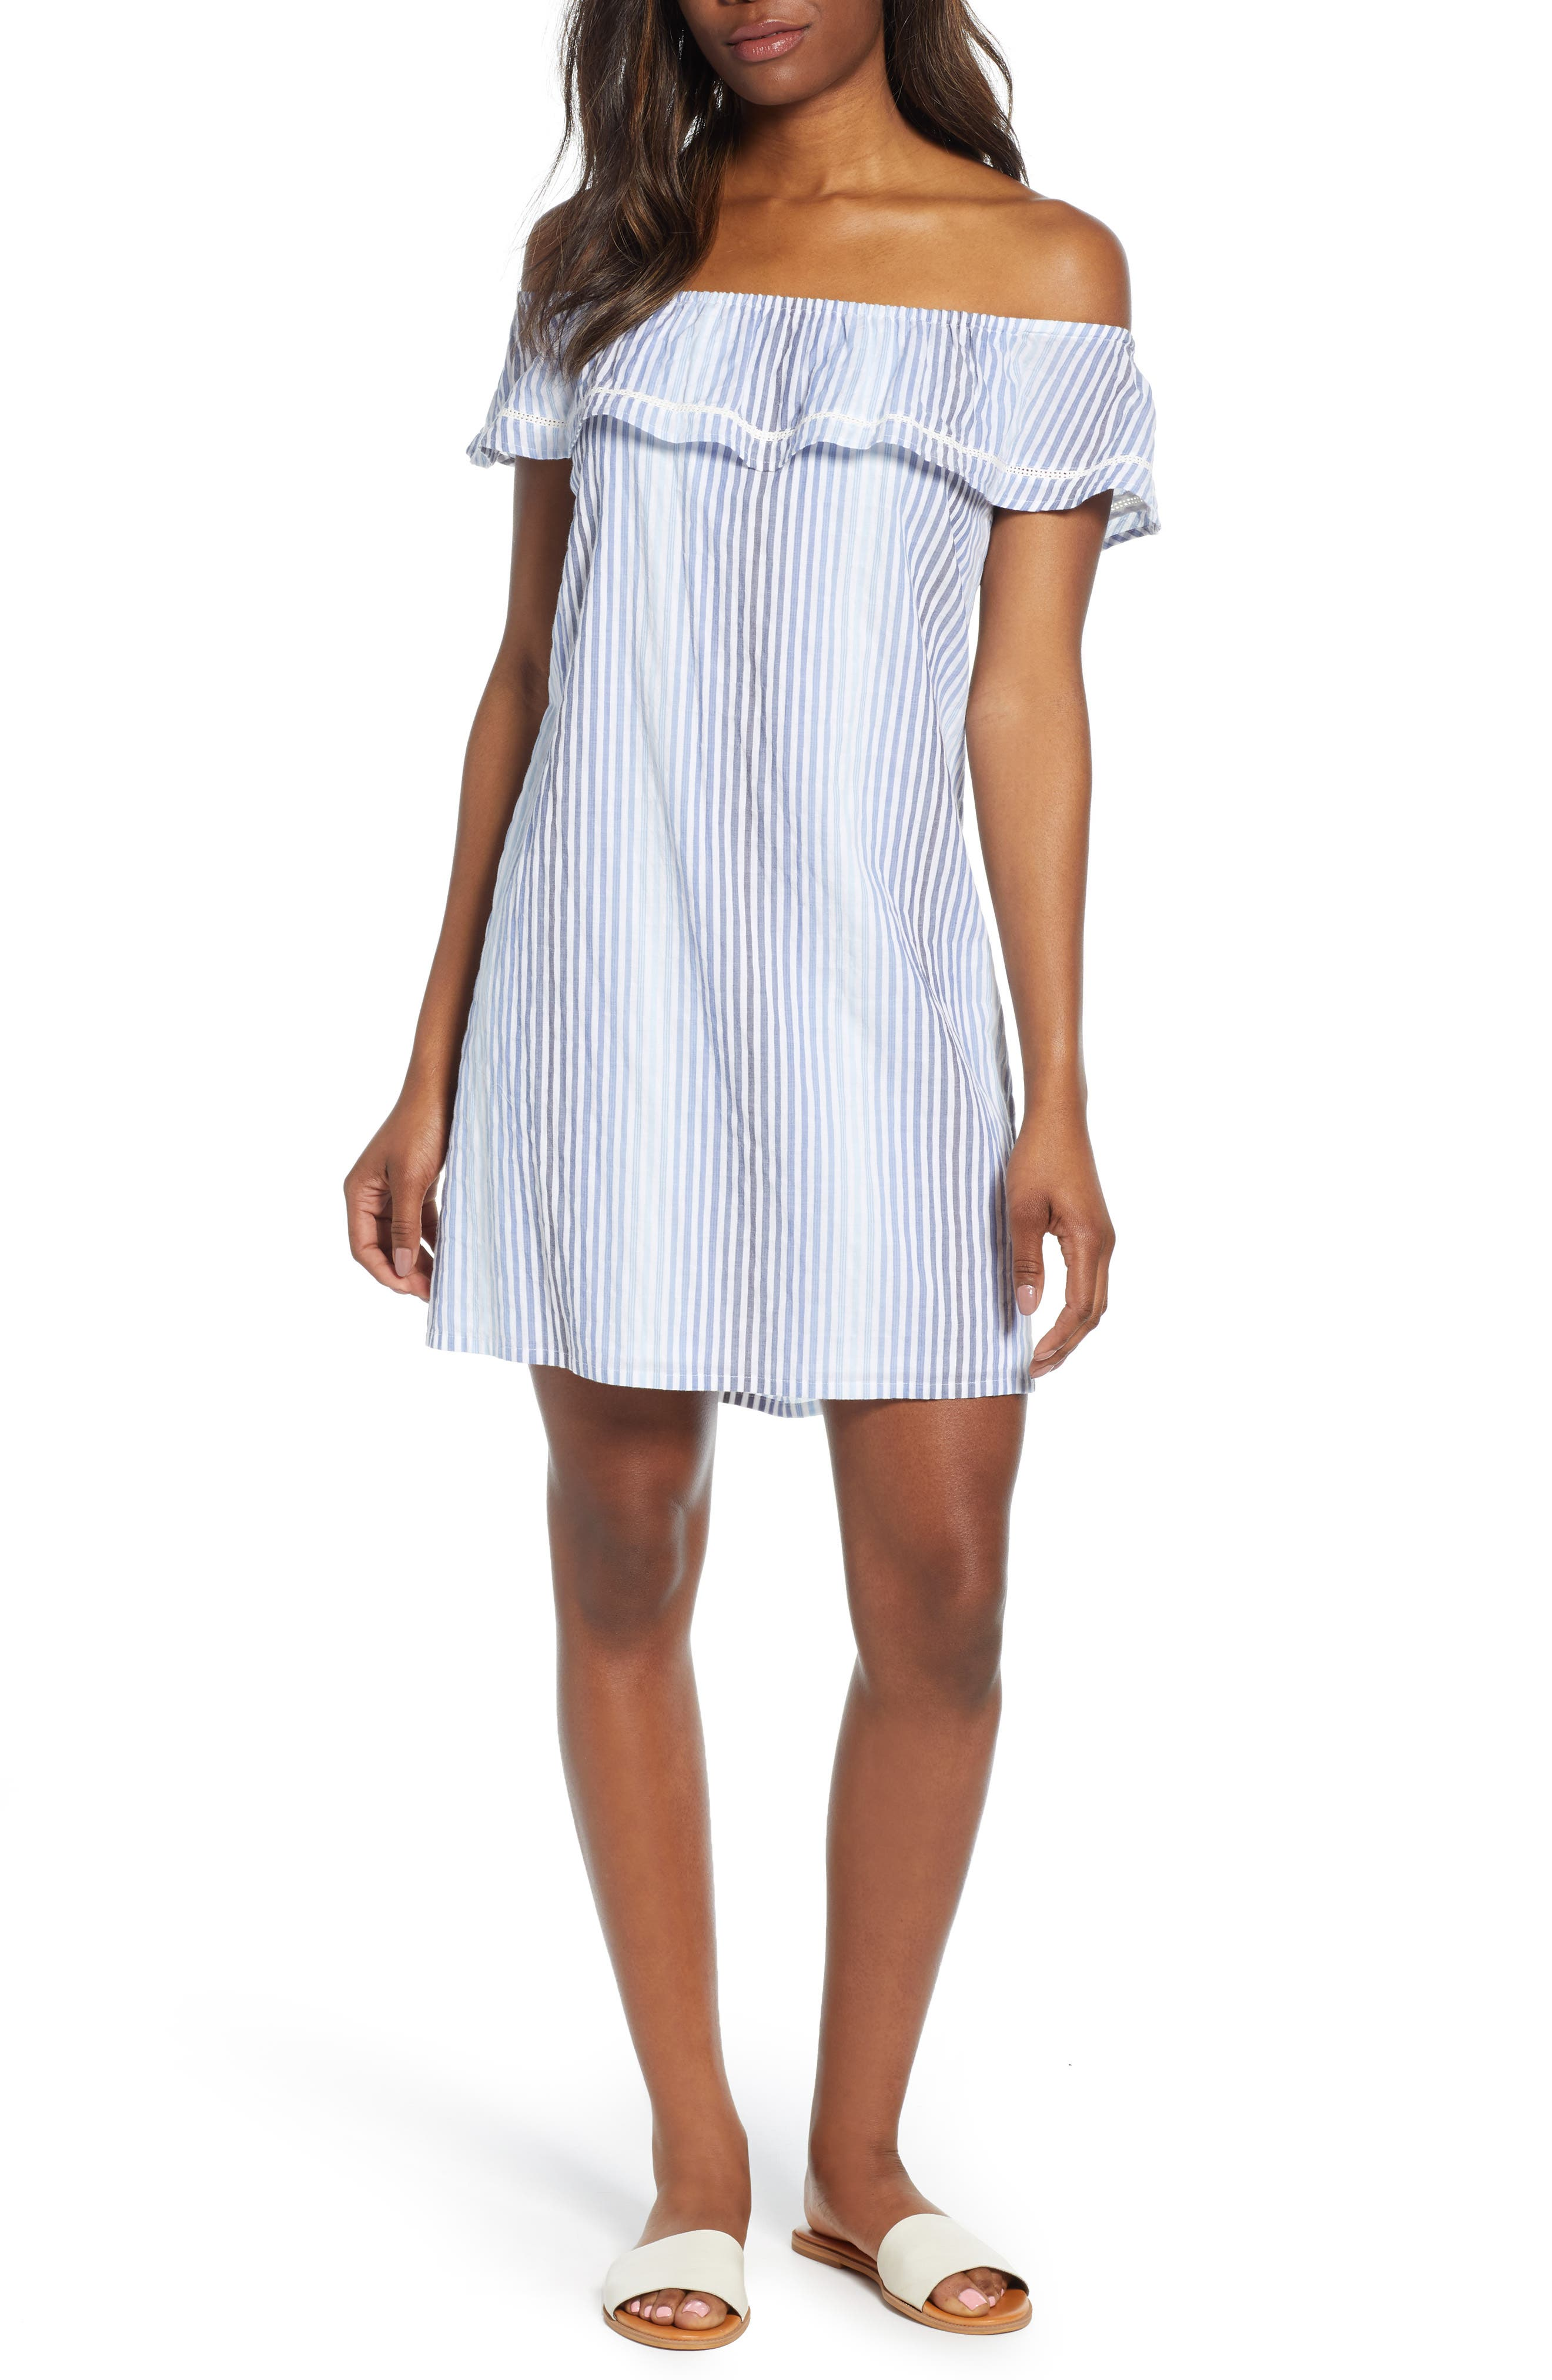 Tommy Bahama Simona Sand Off The Shoulder Shift Dress, Blue